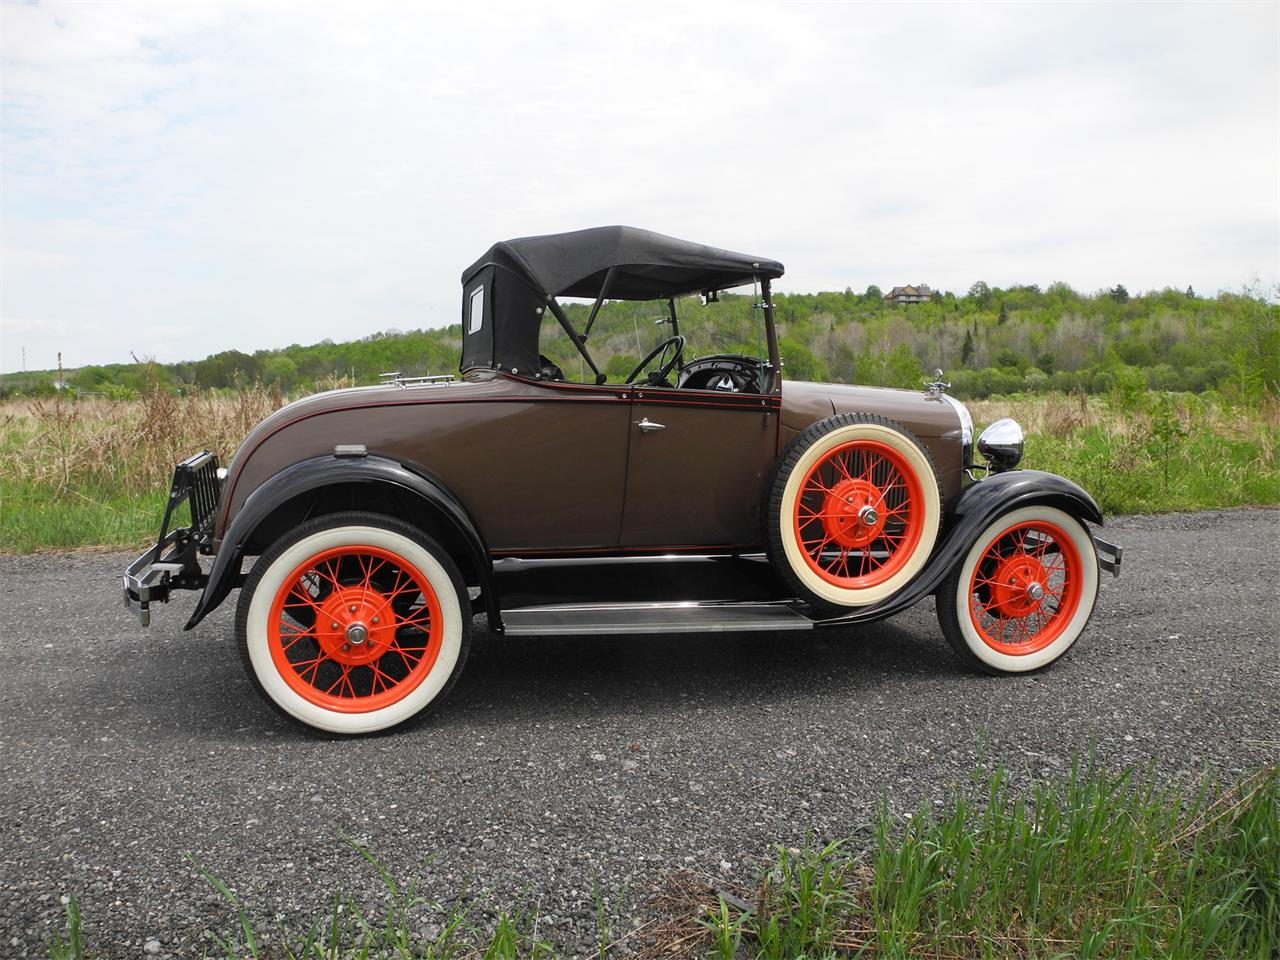 Large Picture of '29 Model A located in SUDBURY Ontario - $264,500.00 - NL8J